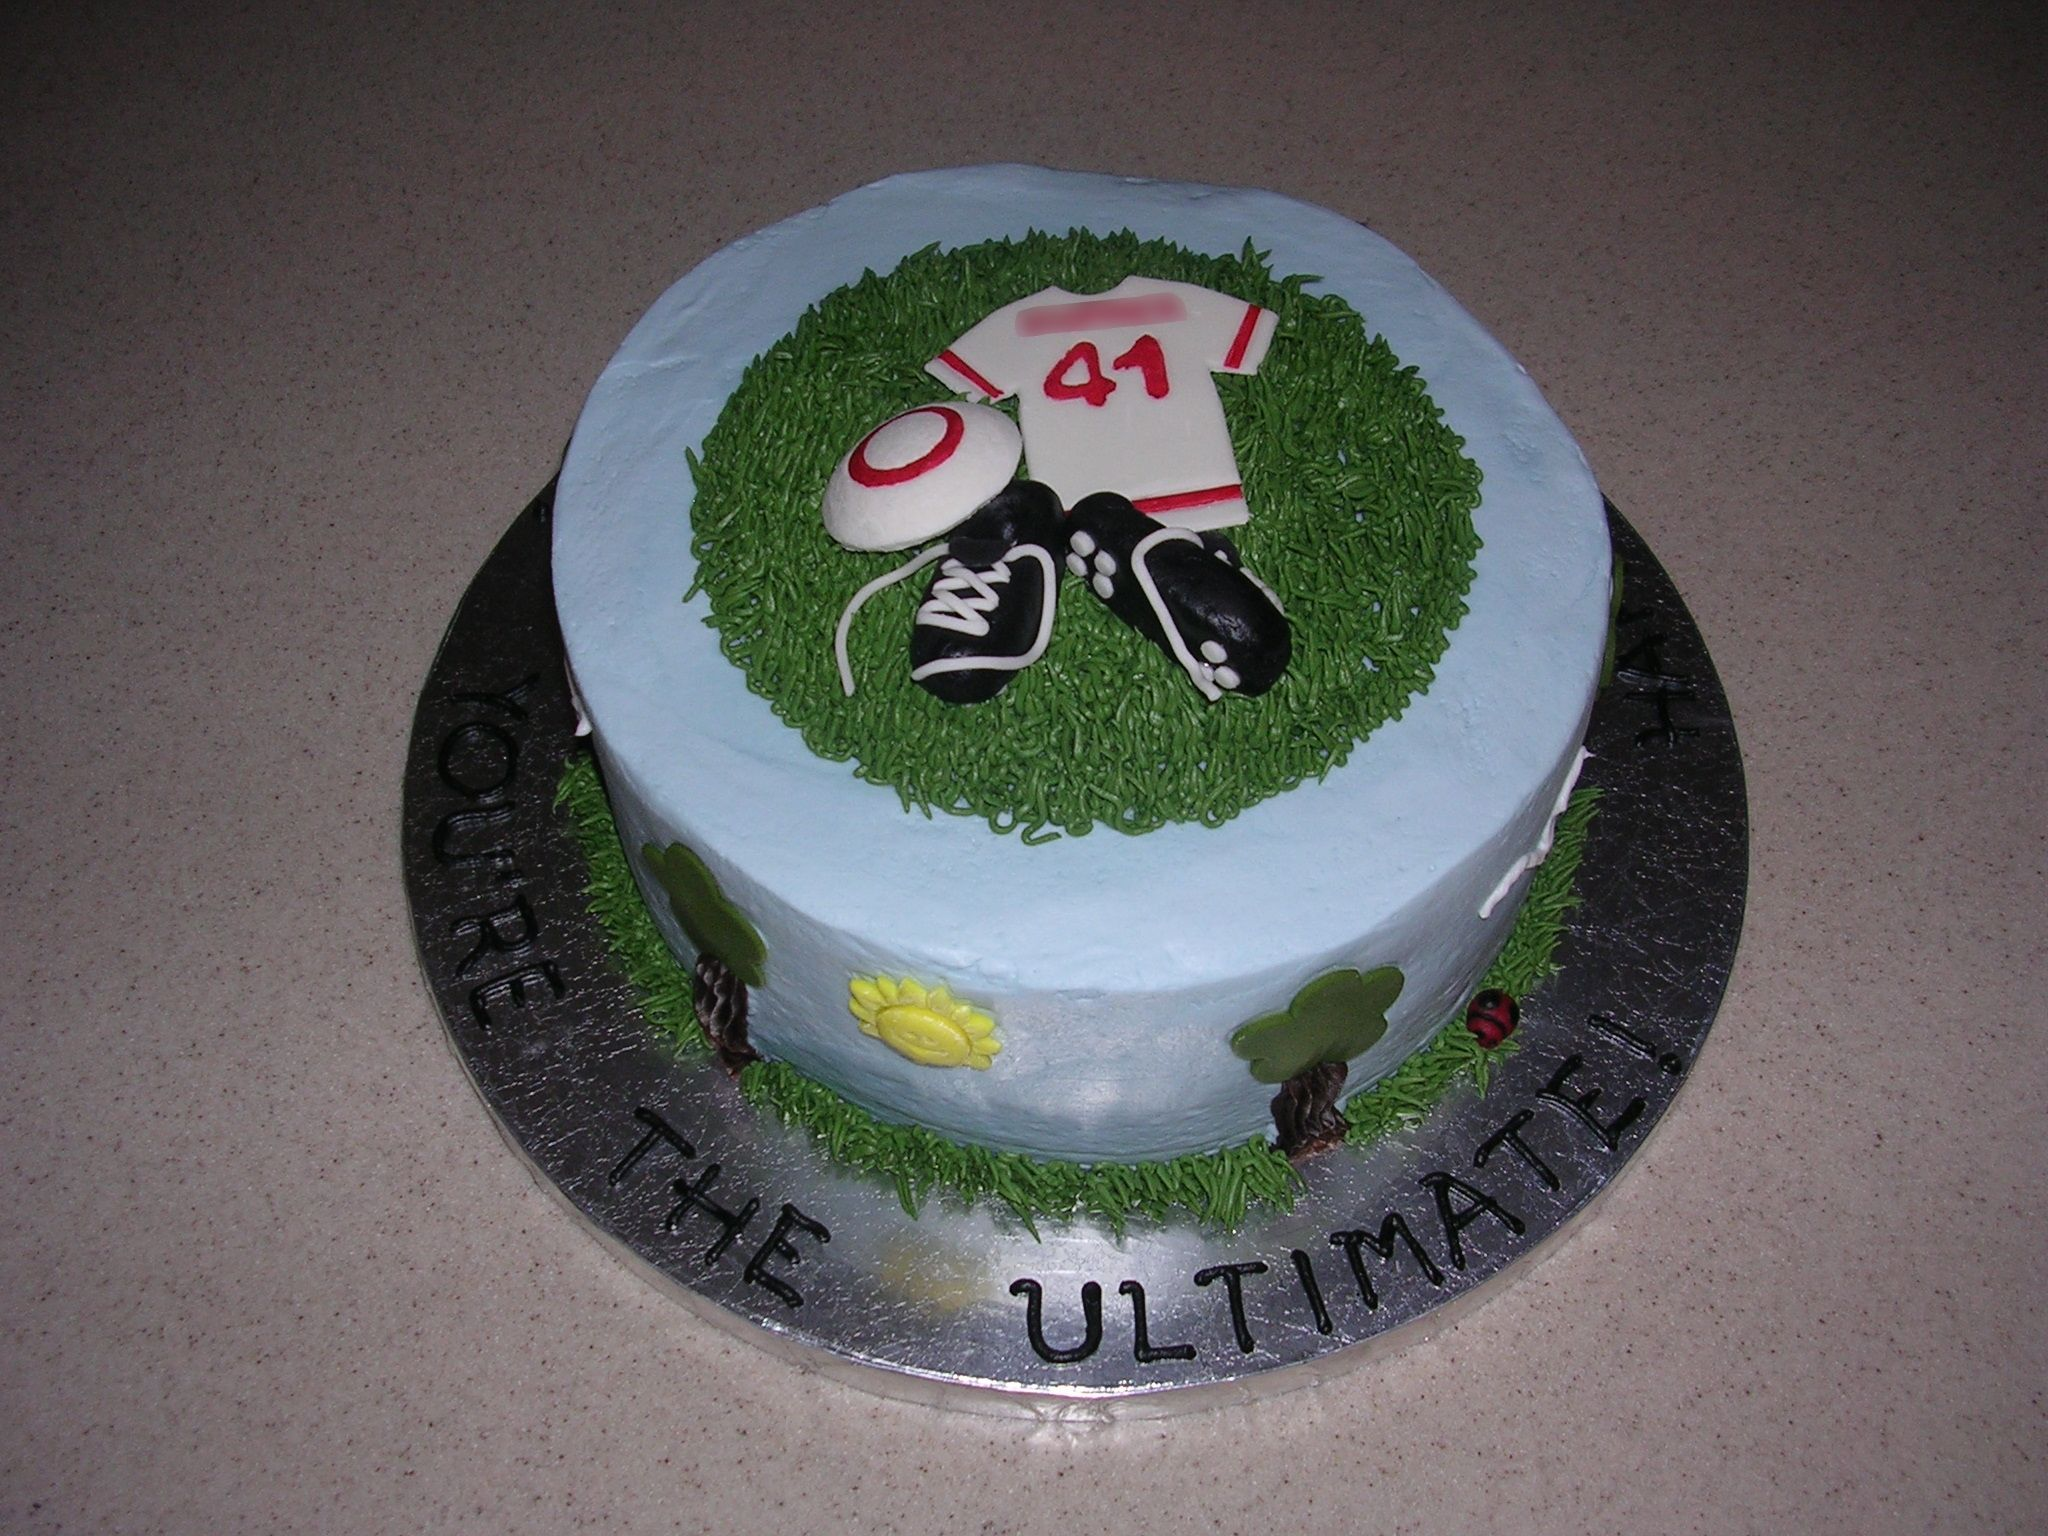 """Ultimate Frisbee - I made this cake for my husband's 41st birthday. He plays the sport of Ultimate, similar to frisbee football. It's an 8 inch chocolate cake with chocolate filling and iced with buttercream.  Grass, tree trunks and birds are buttercream.  Sun, tree tops, ladybugs, shoes, jersey and disc (frisbee) are either fondant or fondant/gumpaste. Last name obscured for privacy.  Words on the cake board read """"Happy Birthday Daniel, You're the Ultimate!"""""""